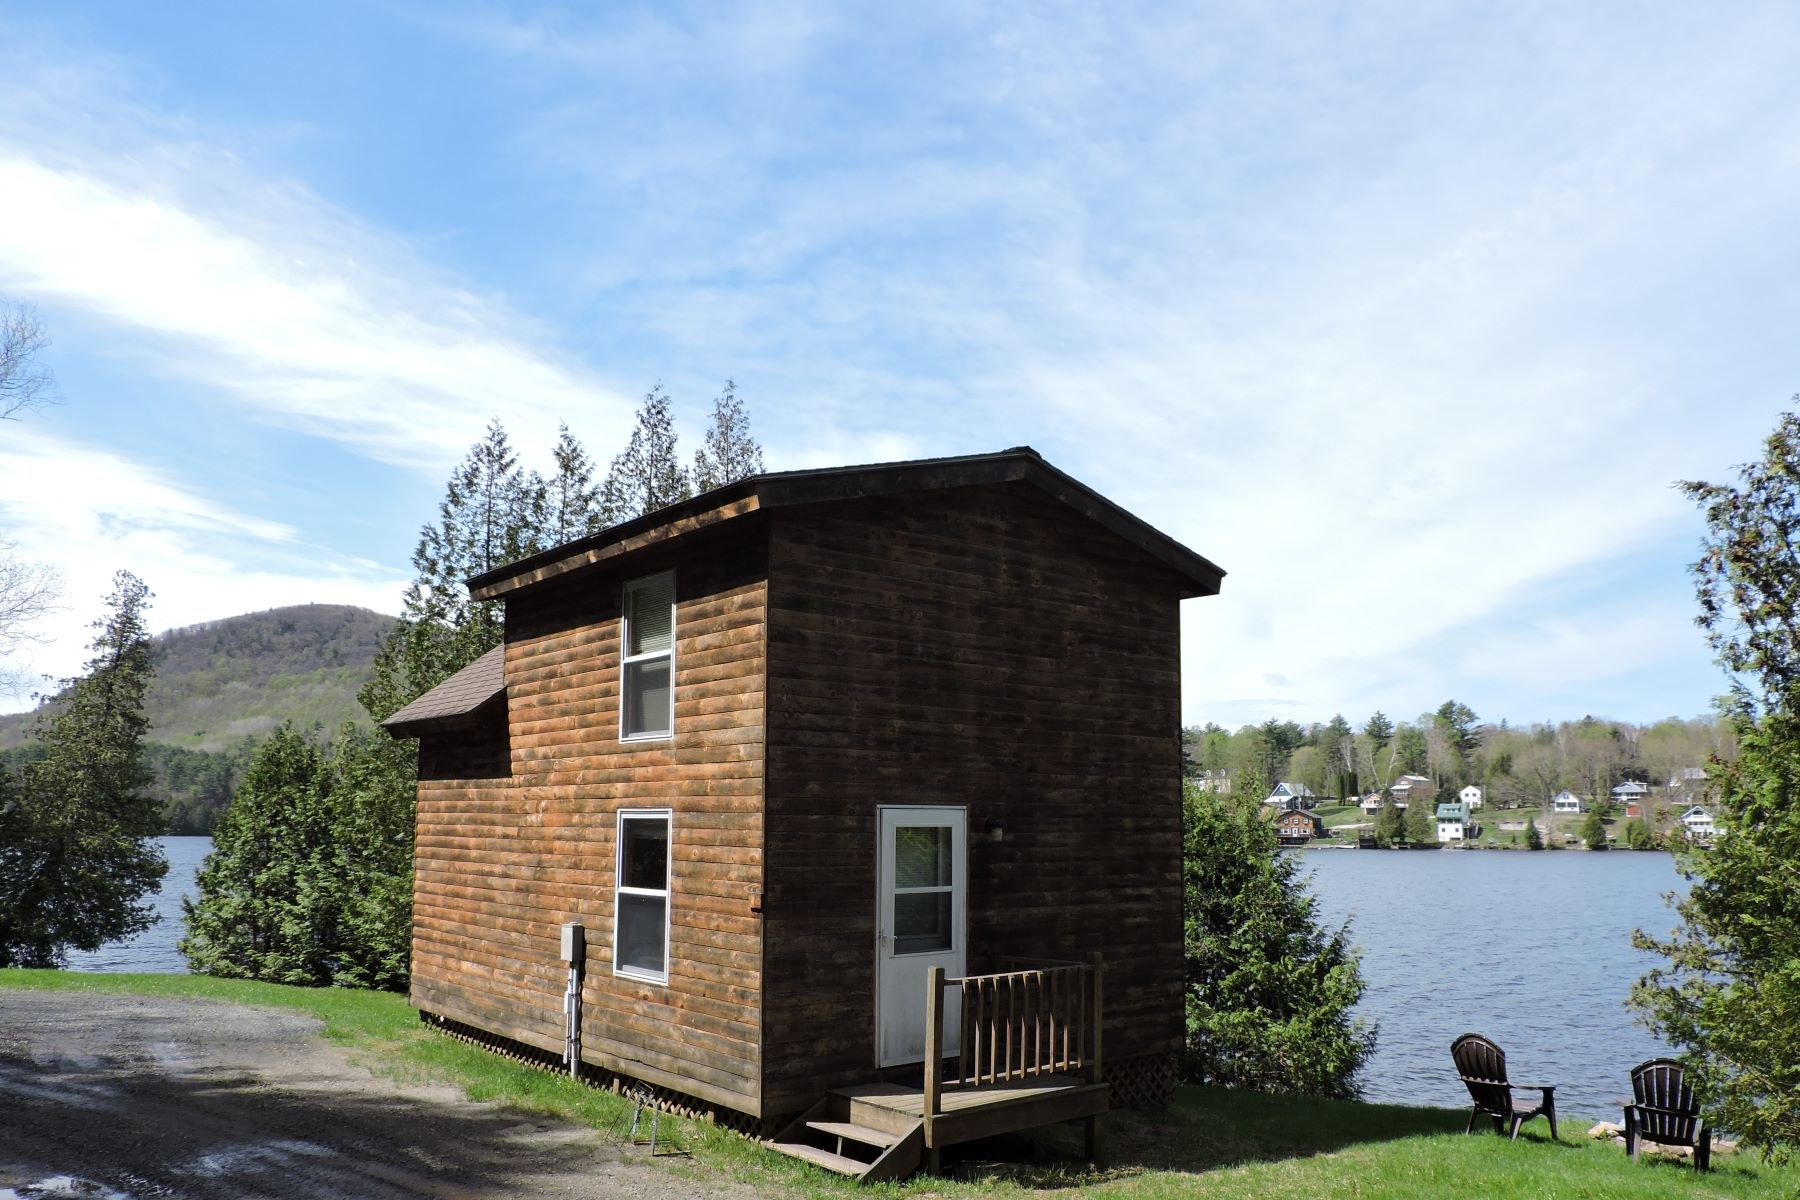 single family homes for Sale at Cabin #1 Campers Lane, Barnet Cabin #1 Campers Ln Barnet, Vermont 05821 United States